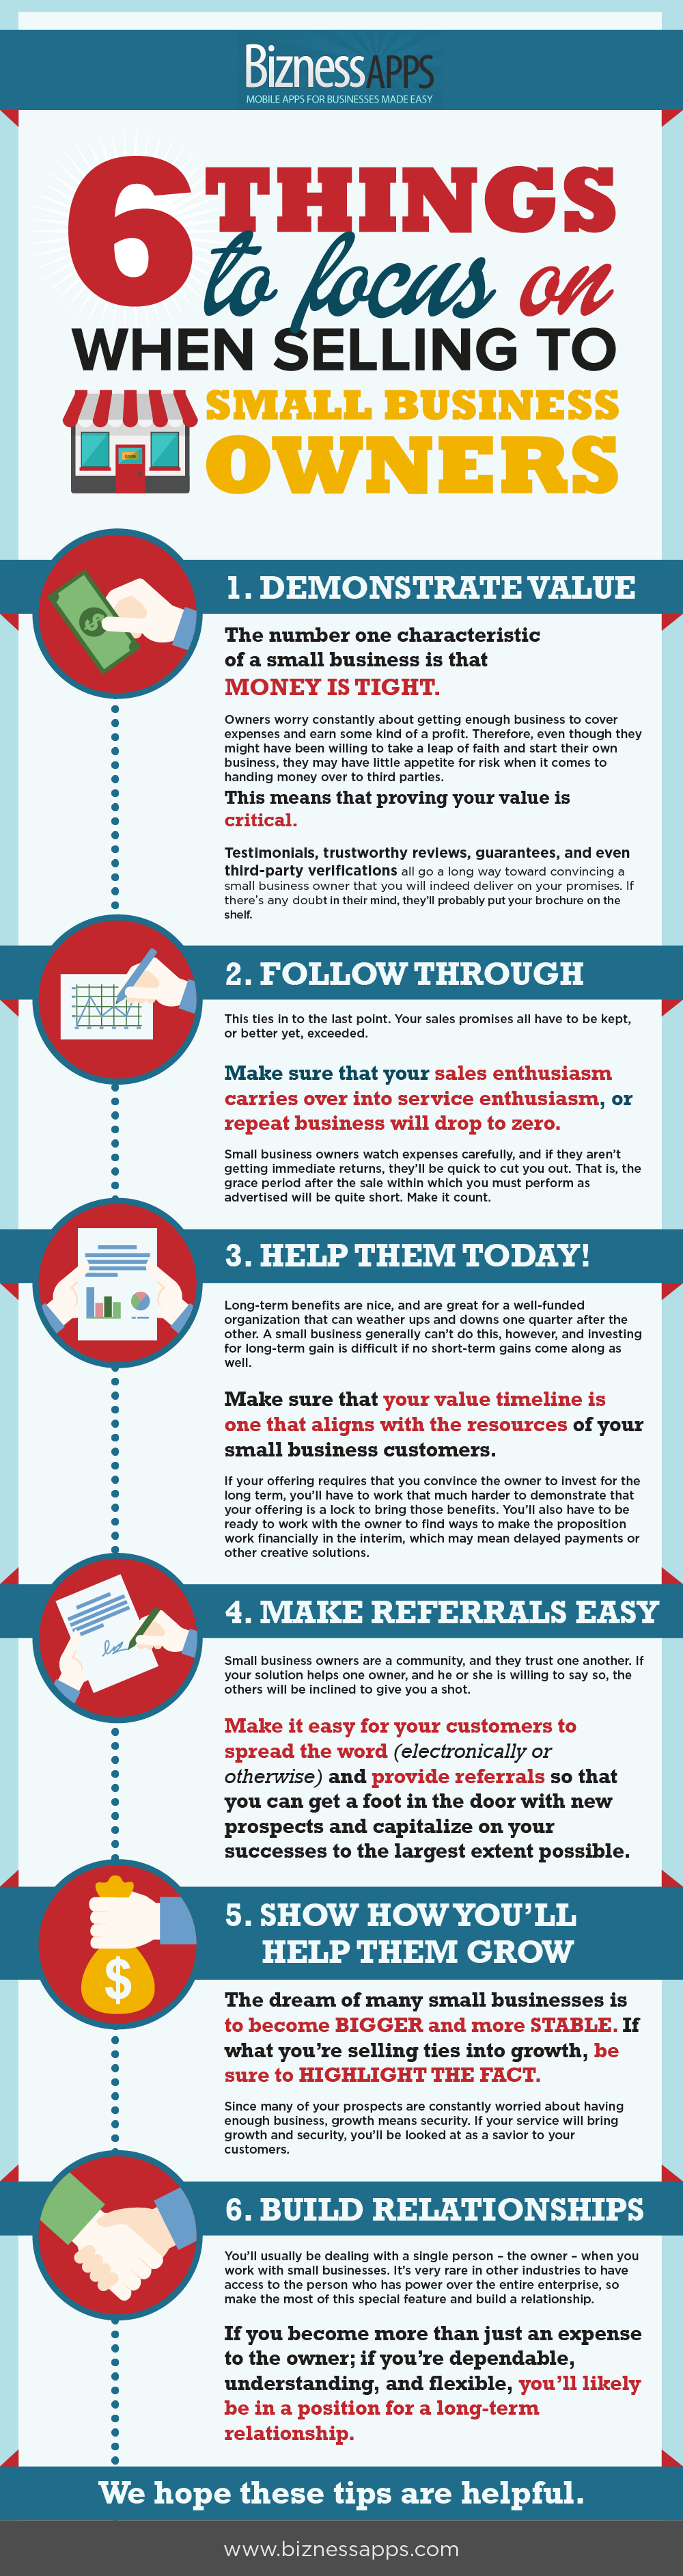 sellbusinessinfographic